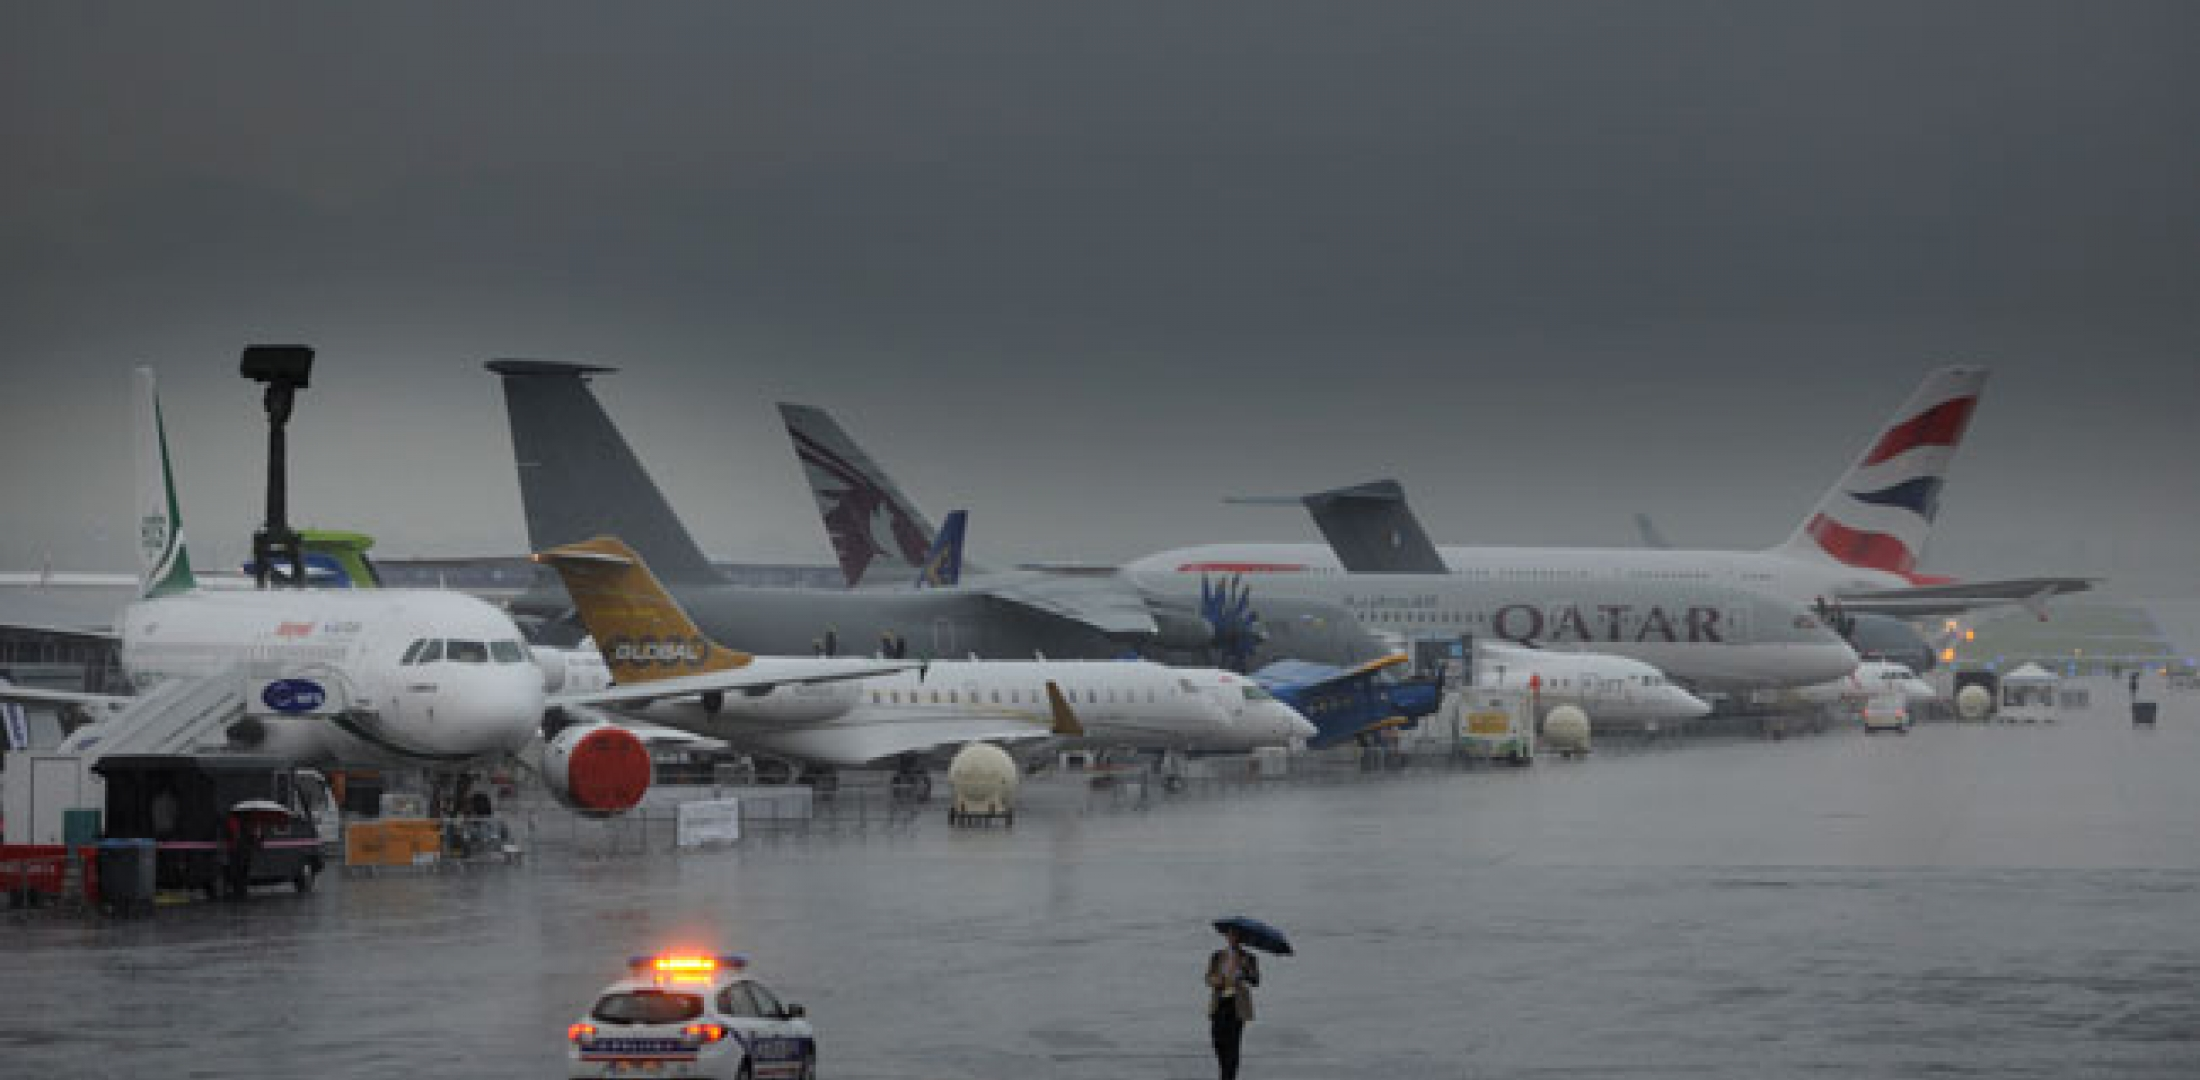 The main flight line was well drenched during the downpour.